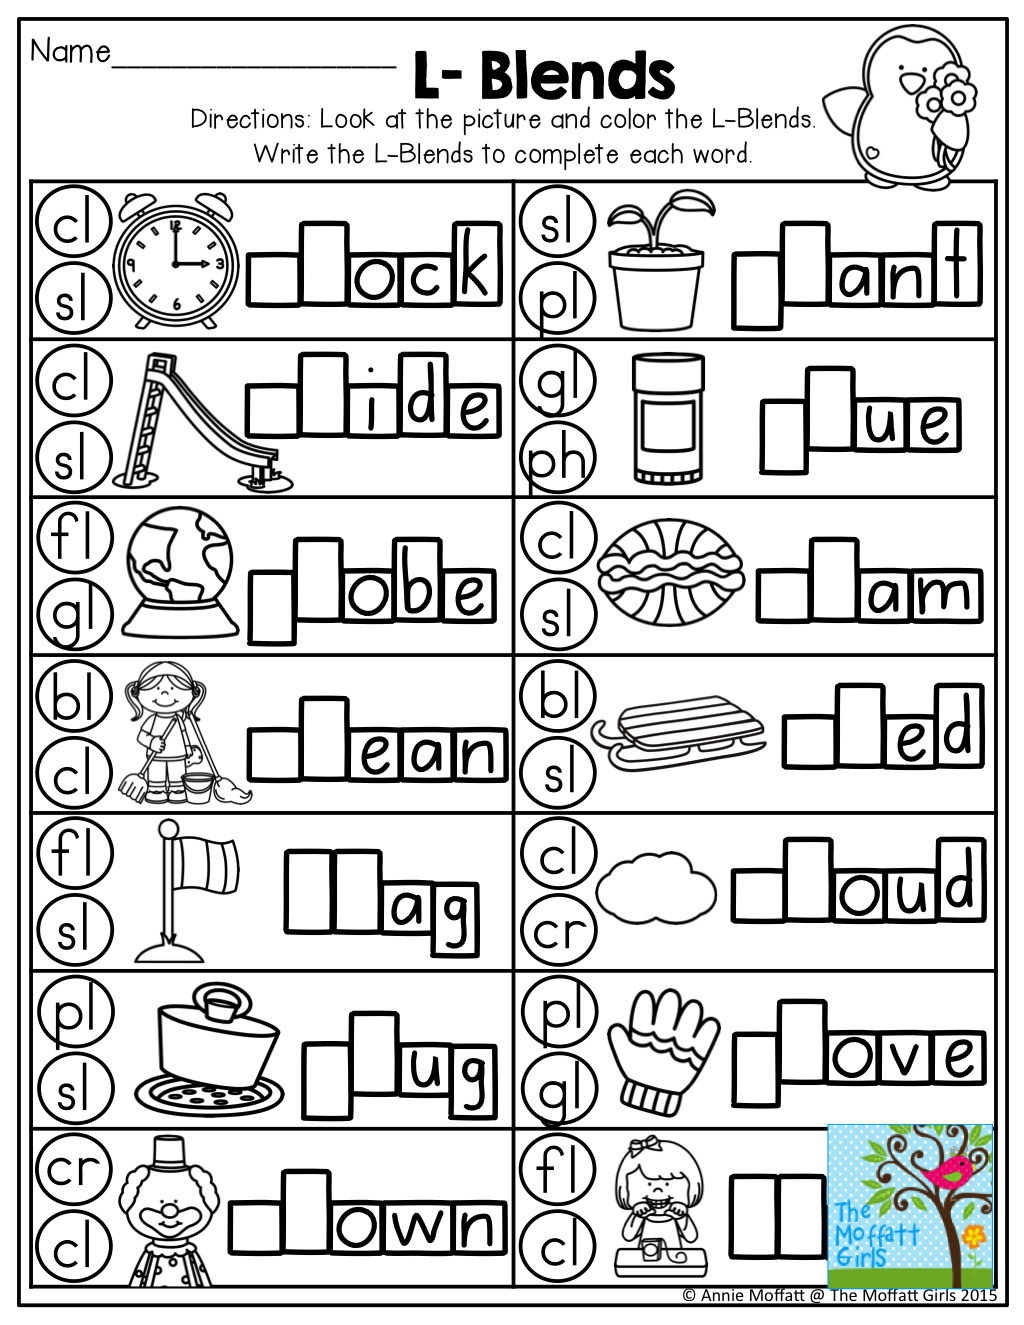 Best 25+ L blends ideas on Pinterest | Blends worksheets ...